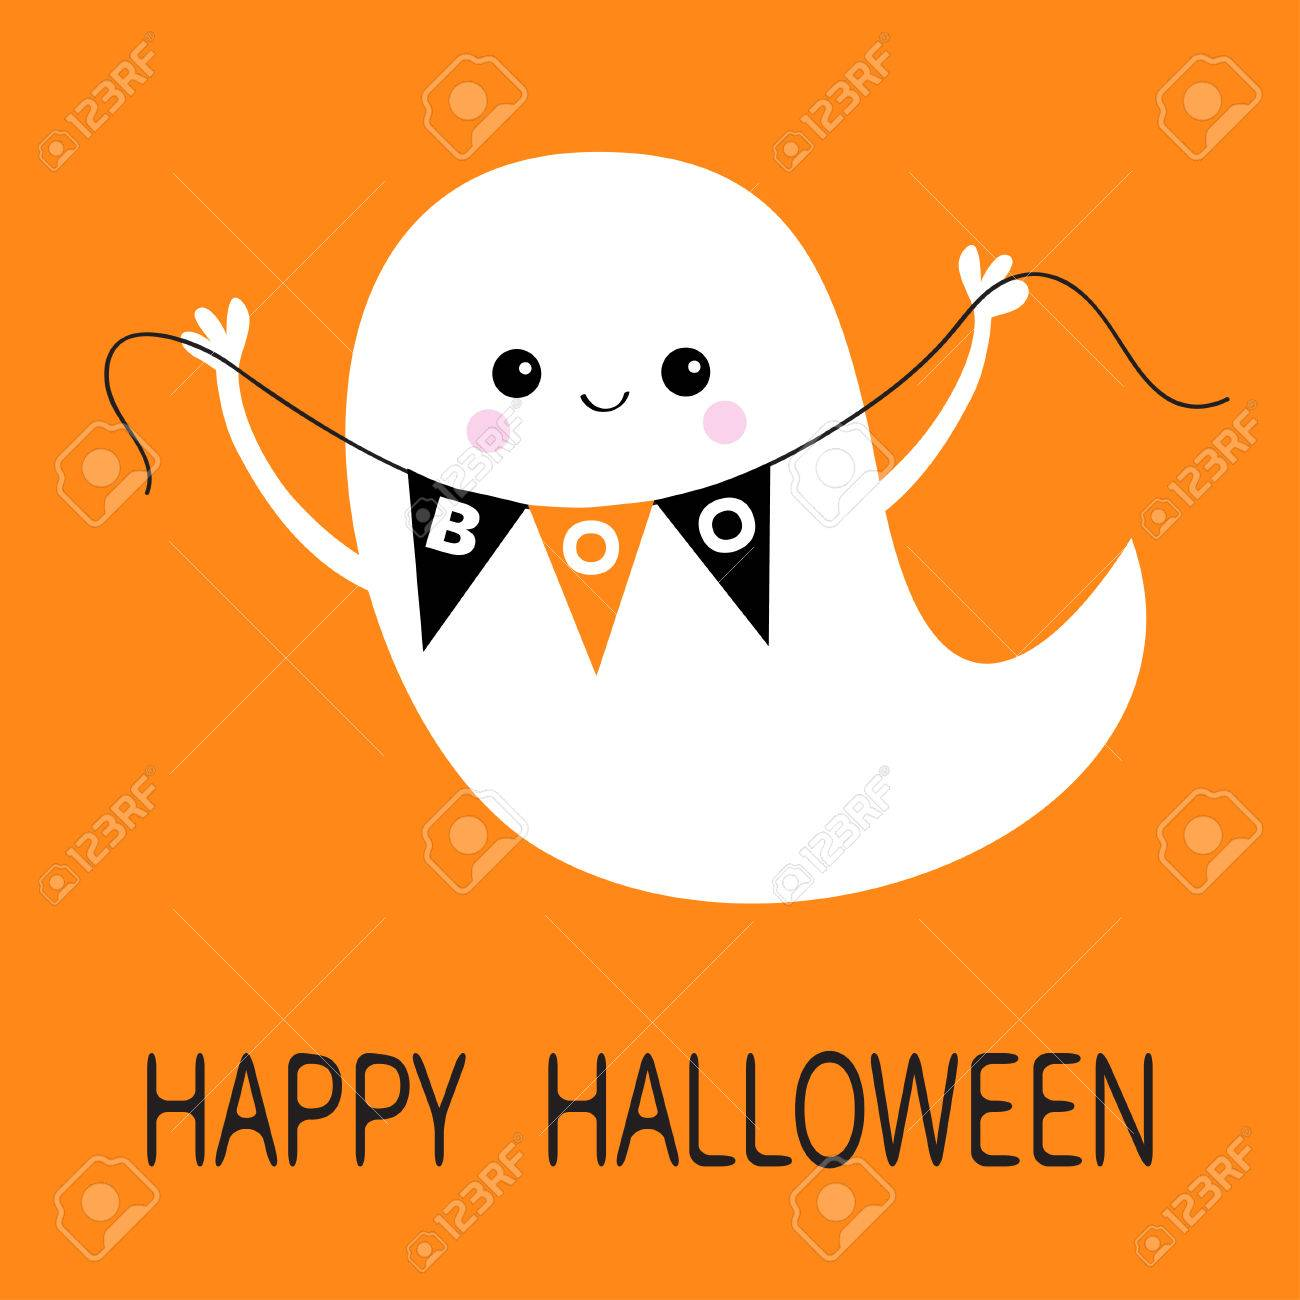 Flying Ghost Spirit Holding Bunting Flag Boo Happy Halloween Royalty Free Cliparts Vectors And Stock Illustration Image 85569071